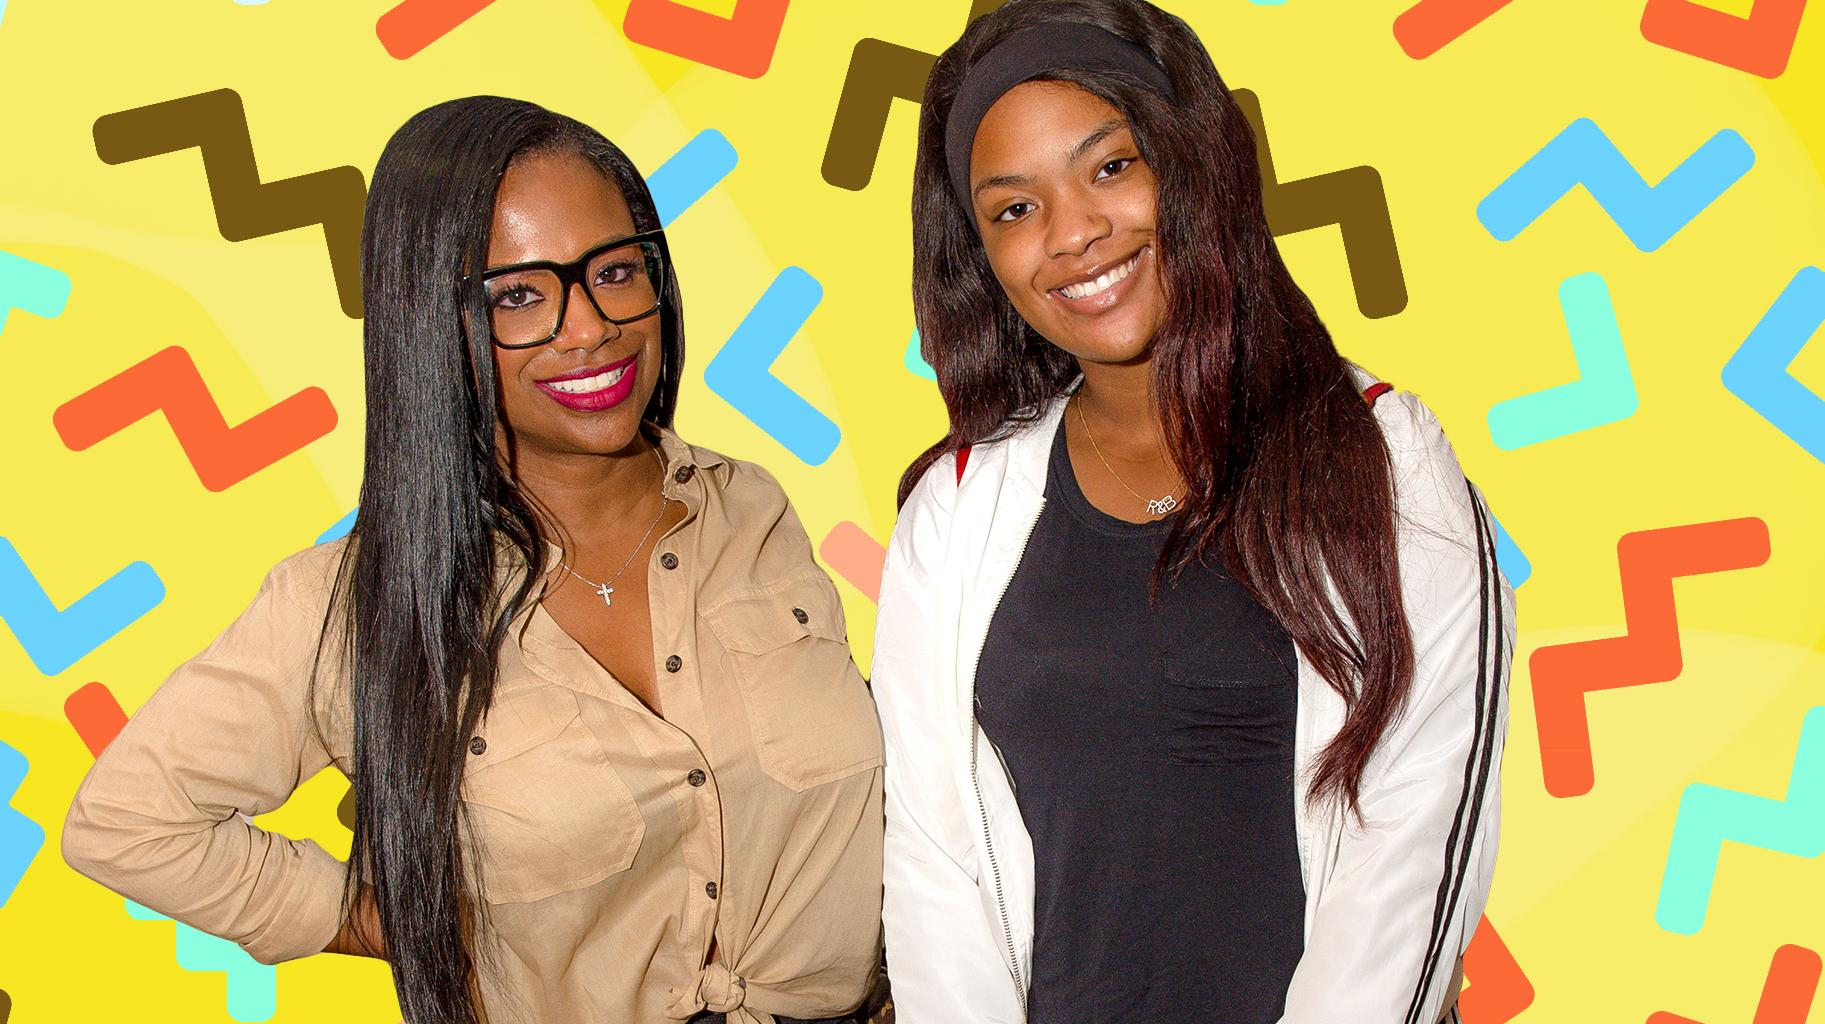 Kandi Burruss Has A Q&A With Riley Burruss And Fans See A 'Kandi Burruss Show' Coming